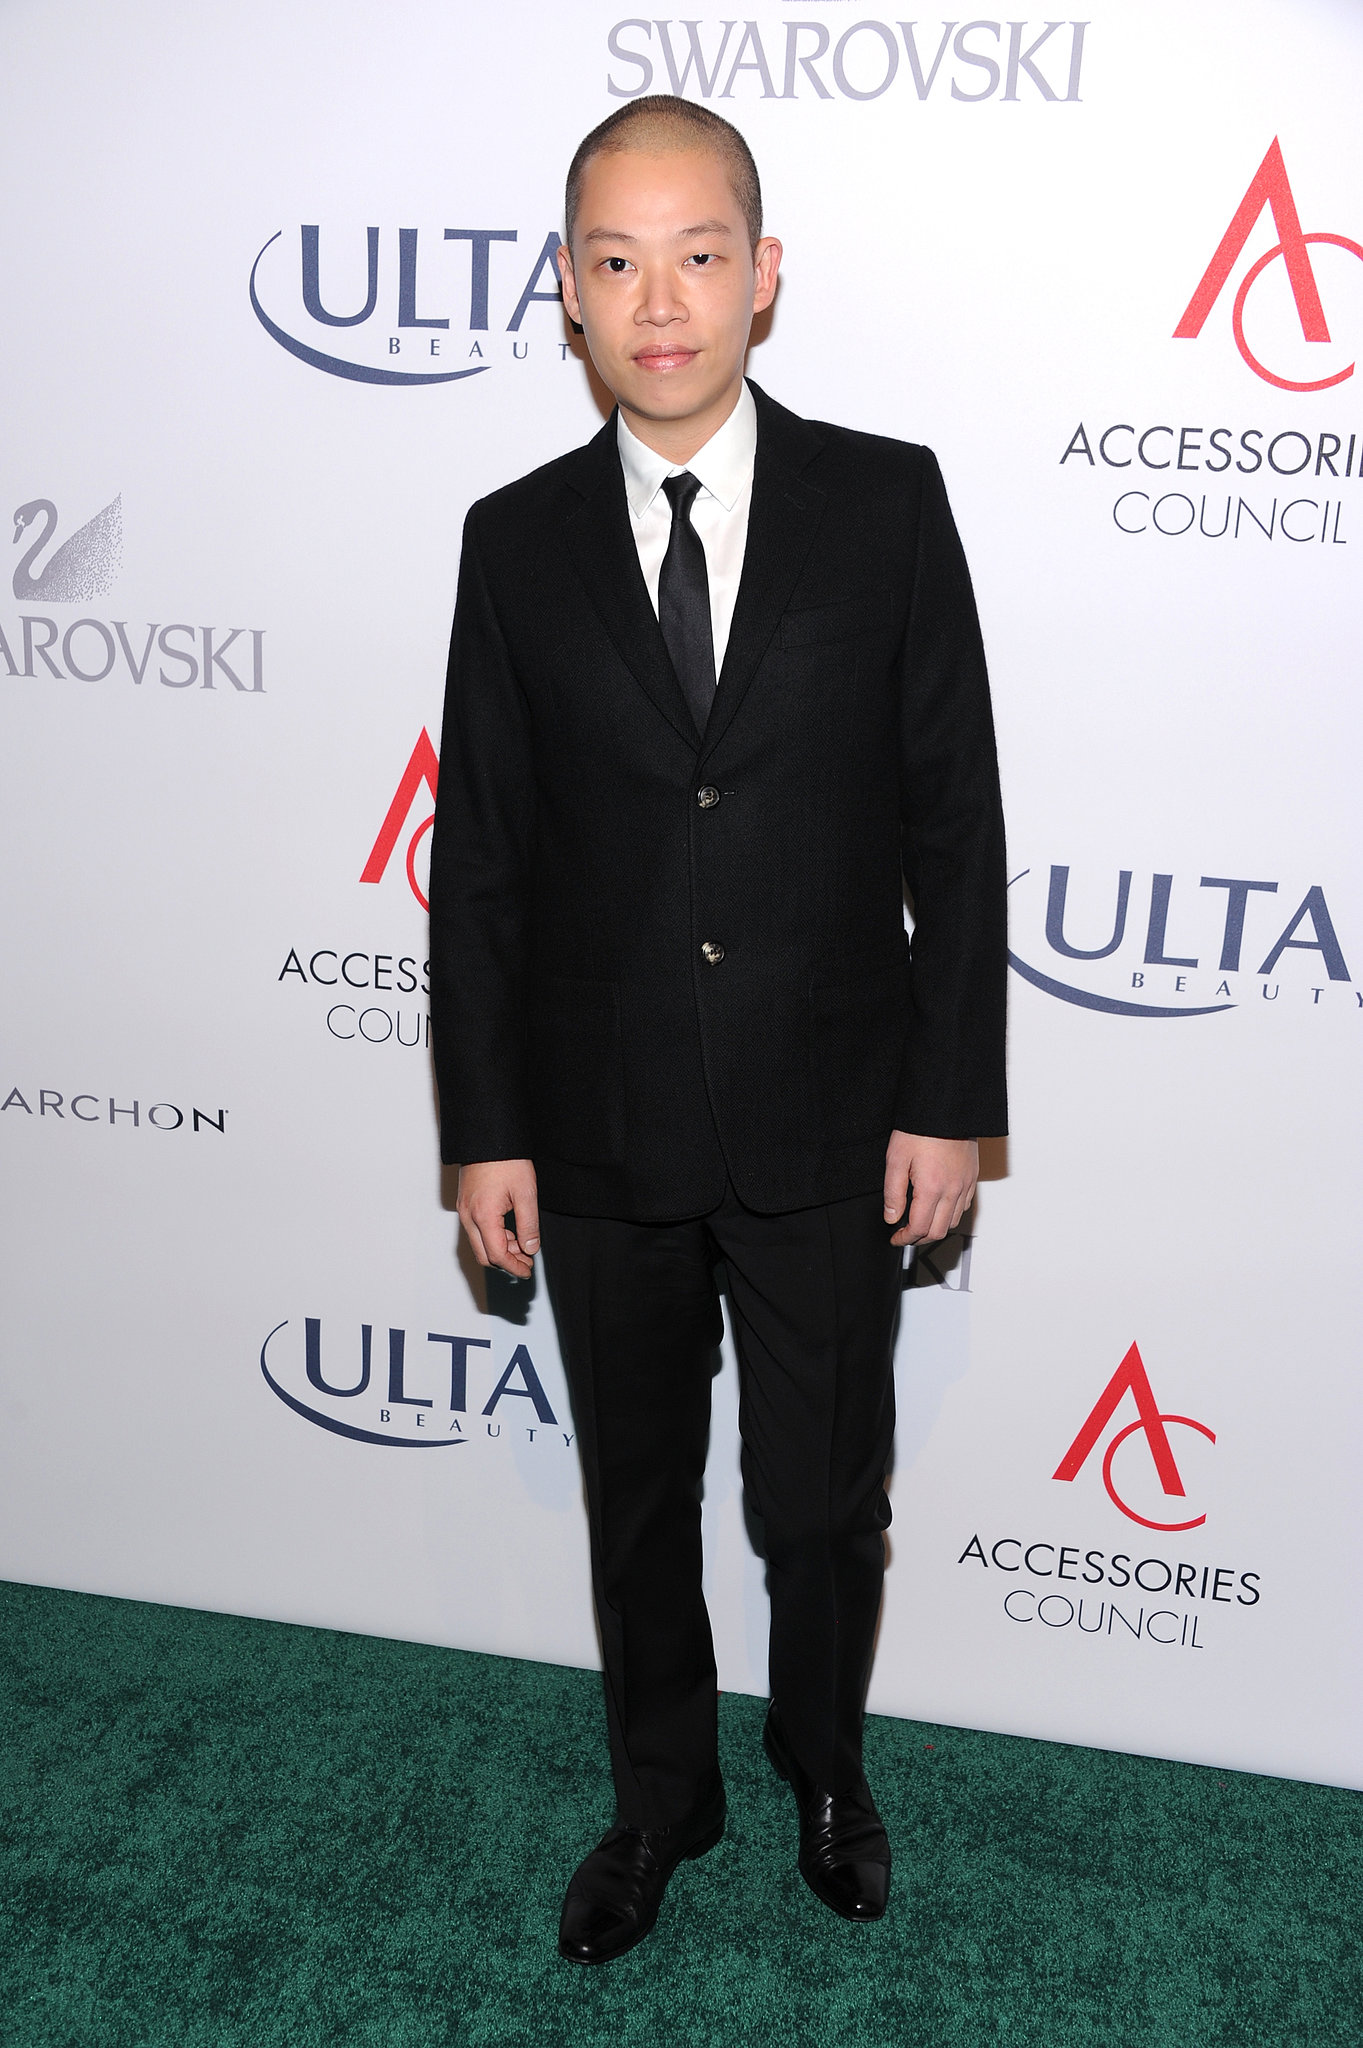 Jason Wu was well-suited at the ACE Awards in a slim suit.